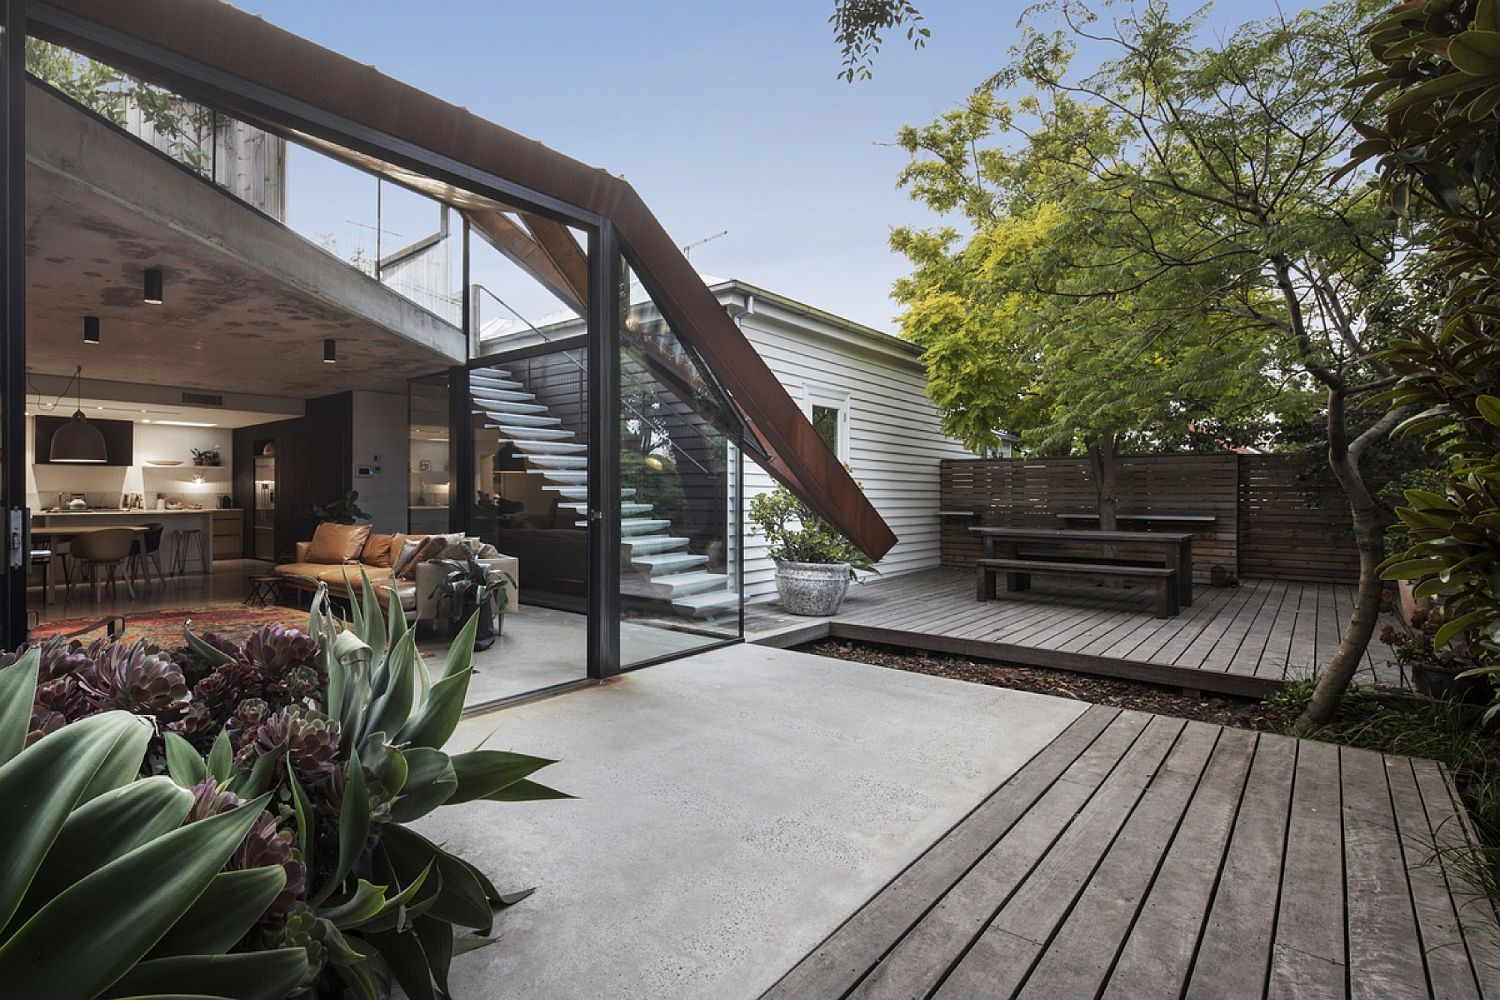 Unique-design-of-the-glazed-roof-brings-the-landscape-inside-with-ease